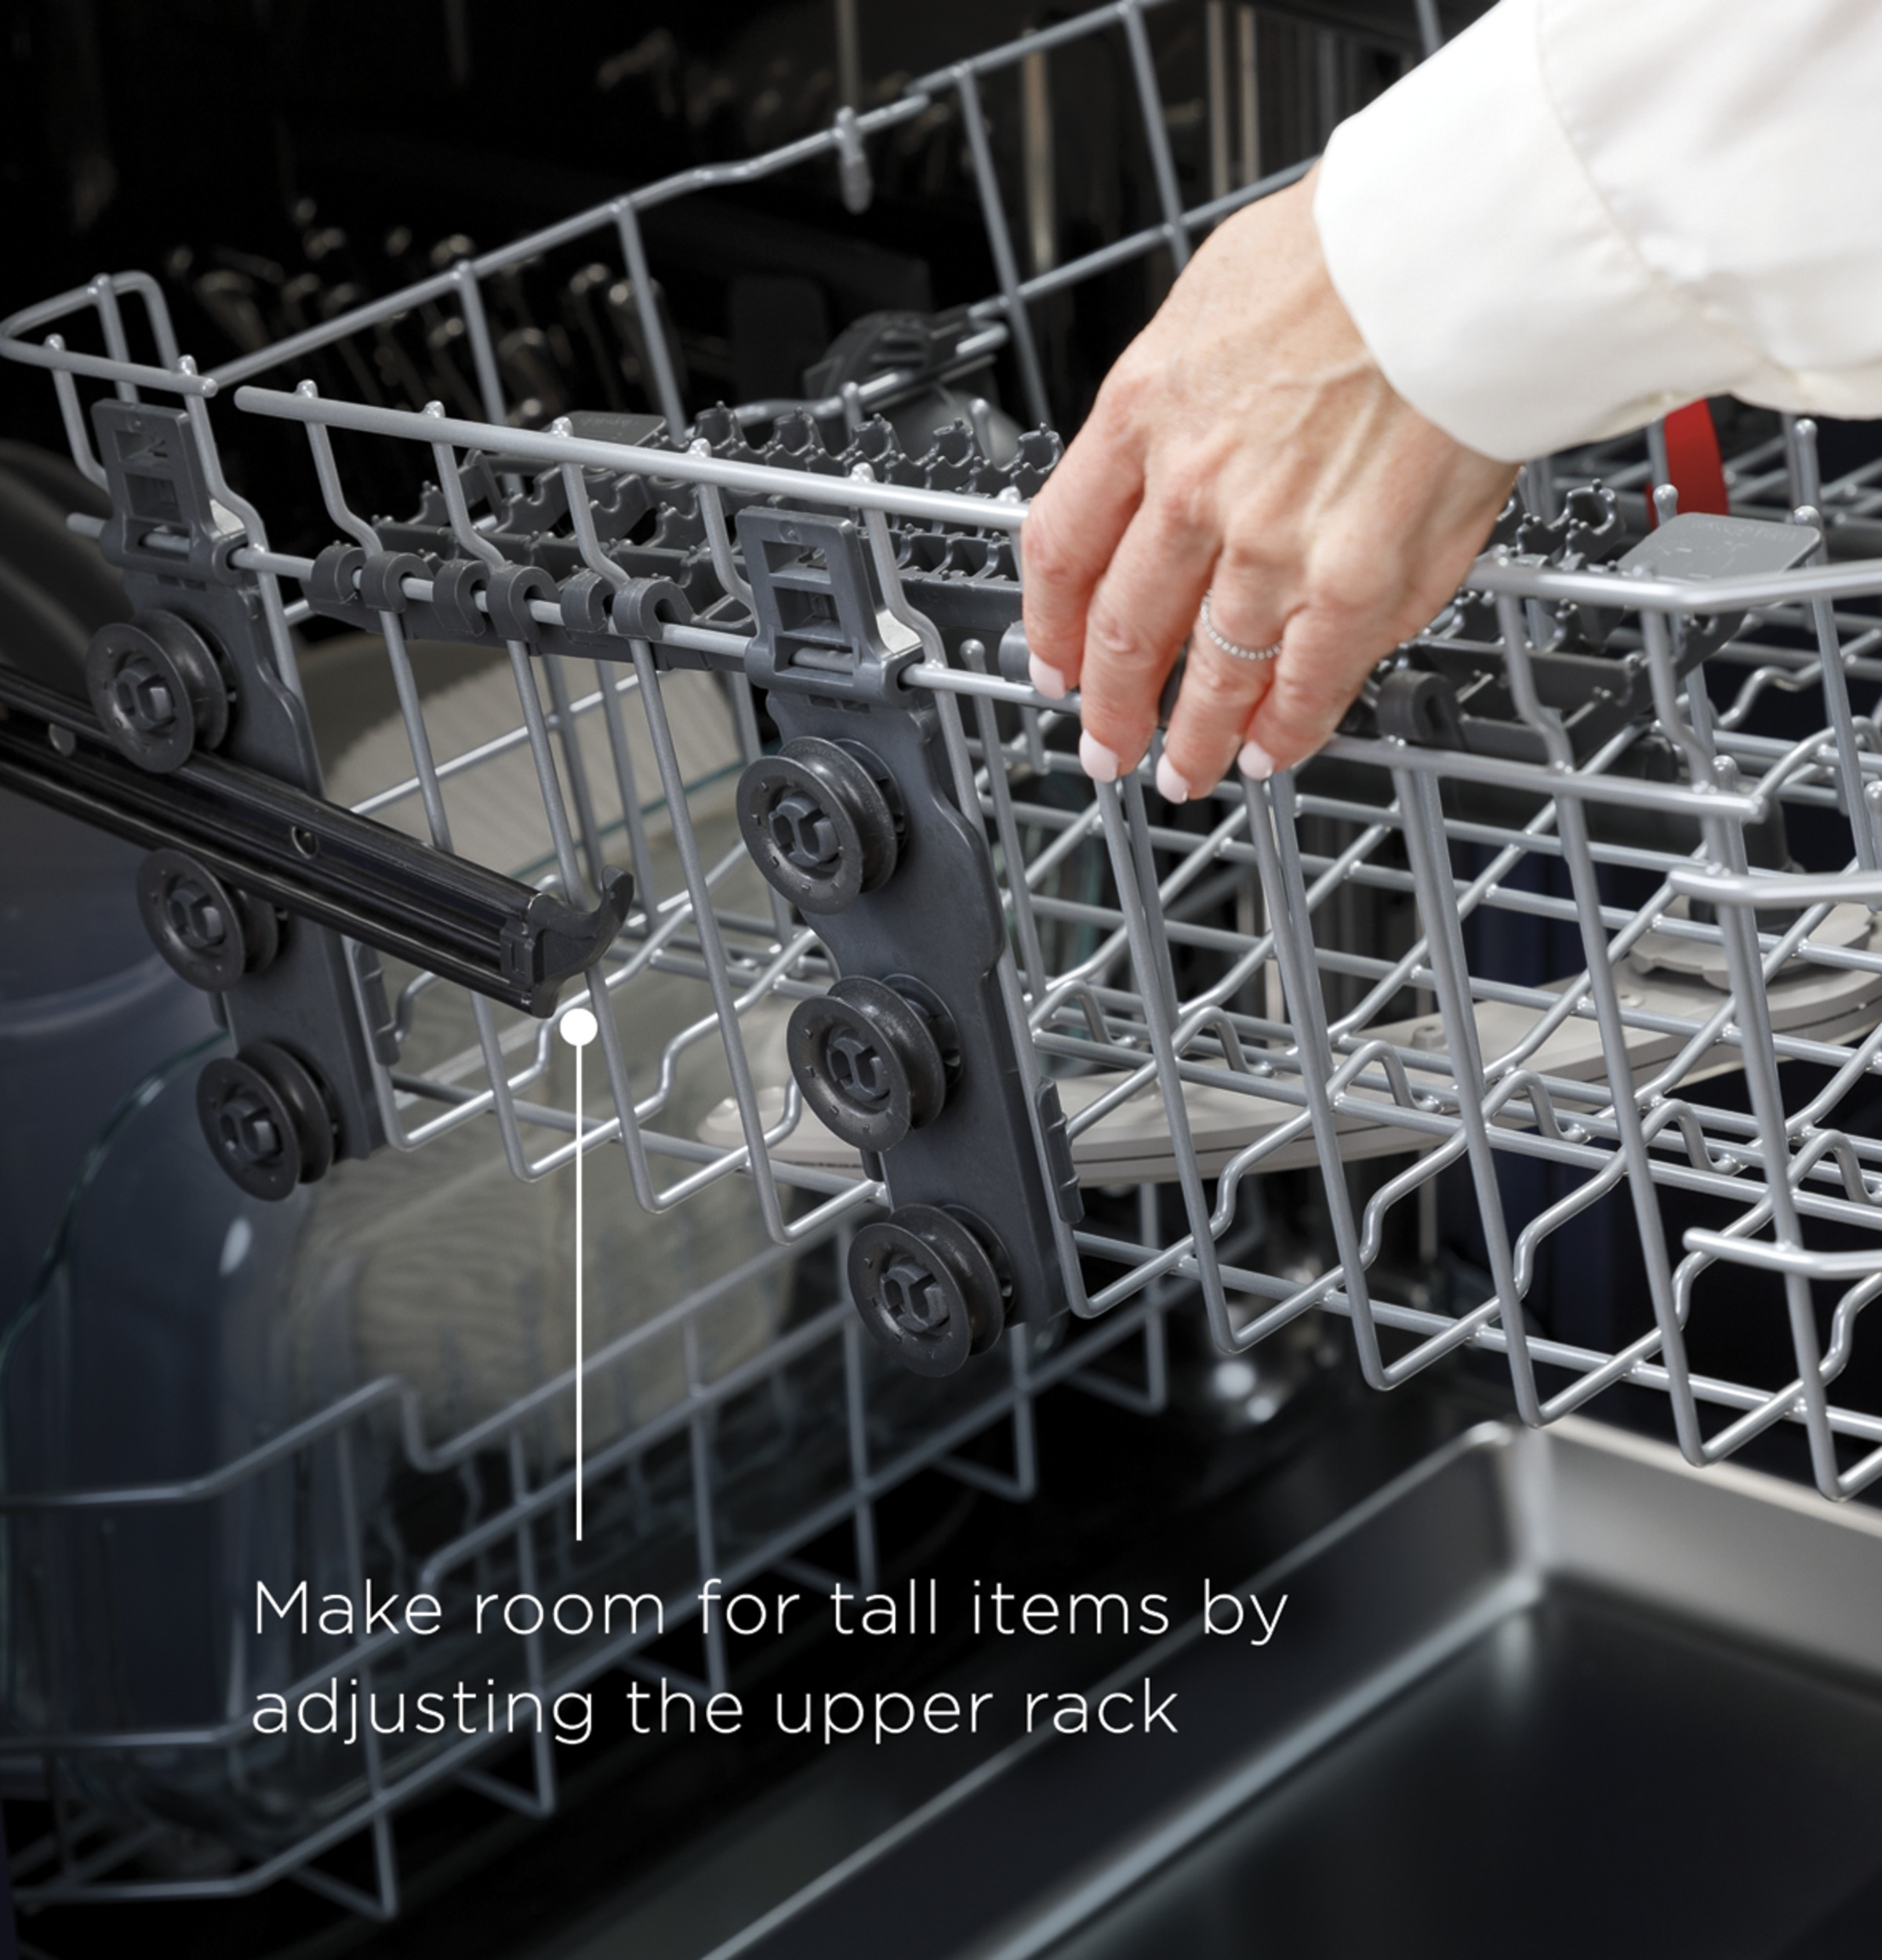 Model: GDT645SGNBB   GE GE® Top Control with Stainless Steel Interior Dishwasher with Sanitize Cycle & Dry Boost with Fan Assist